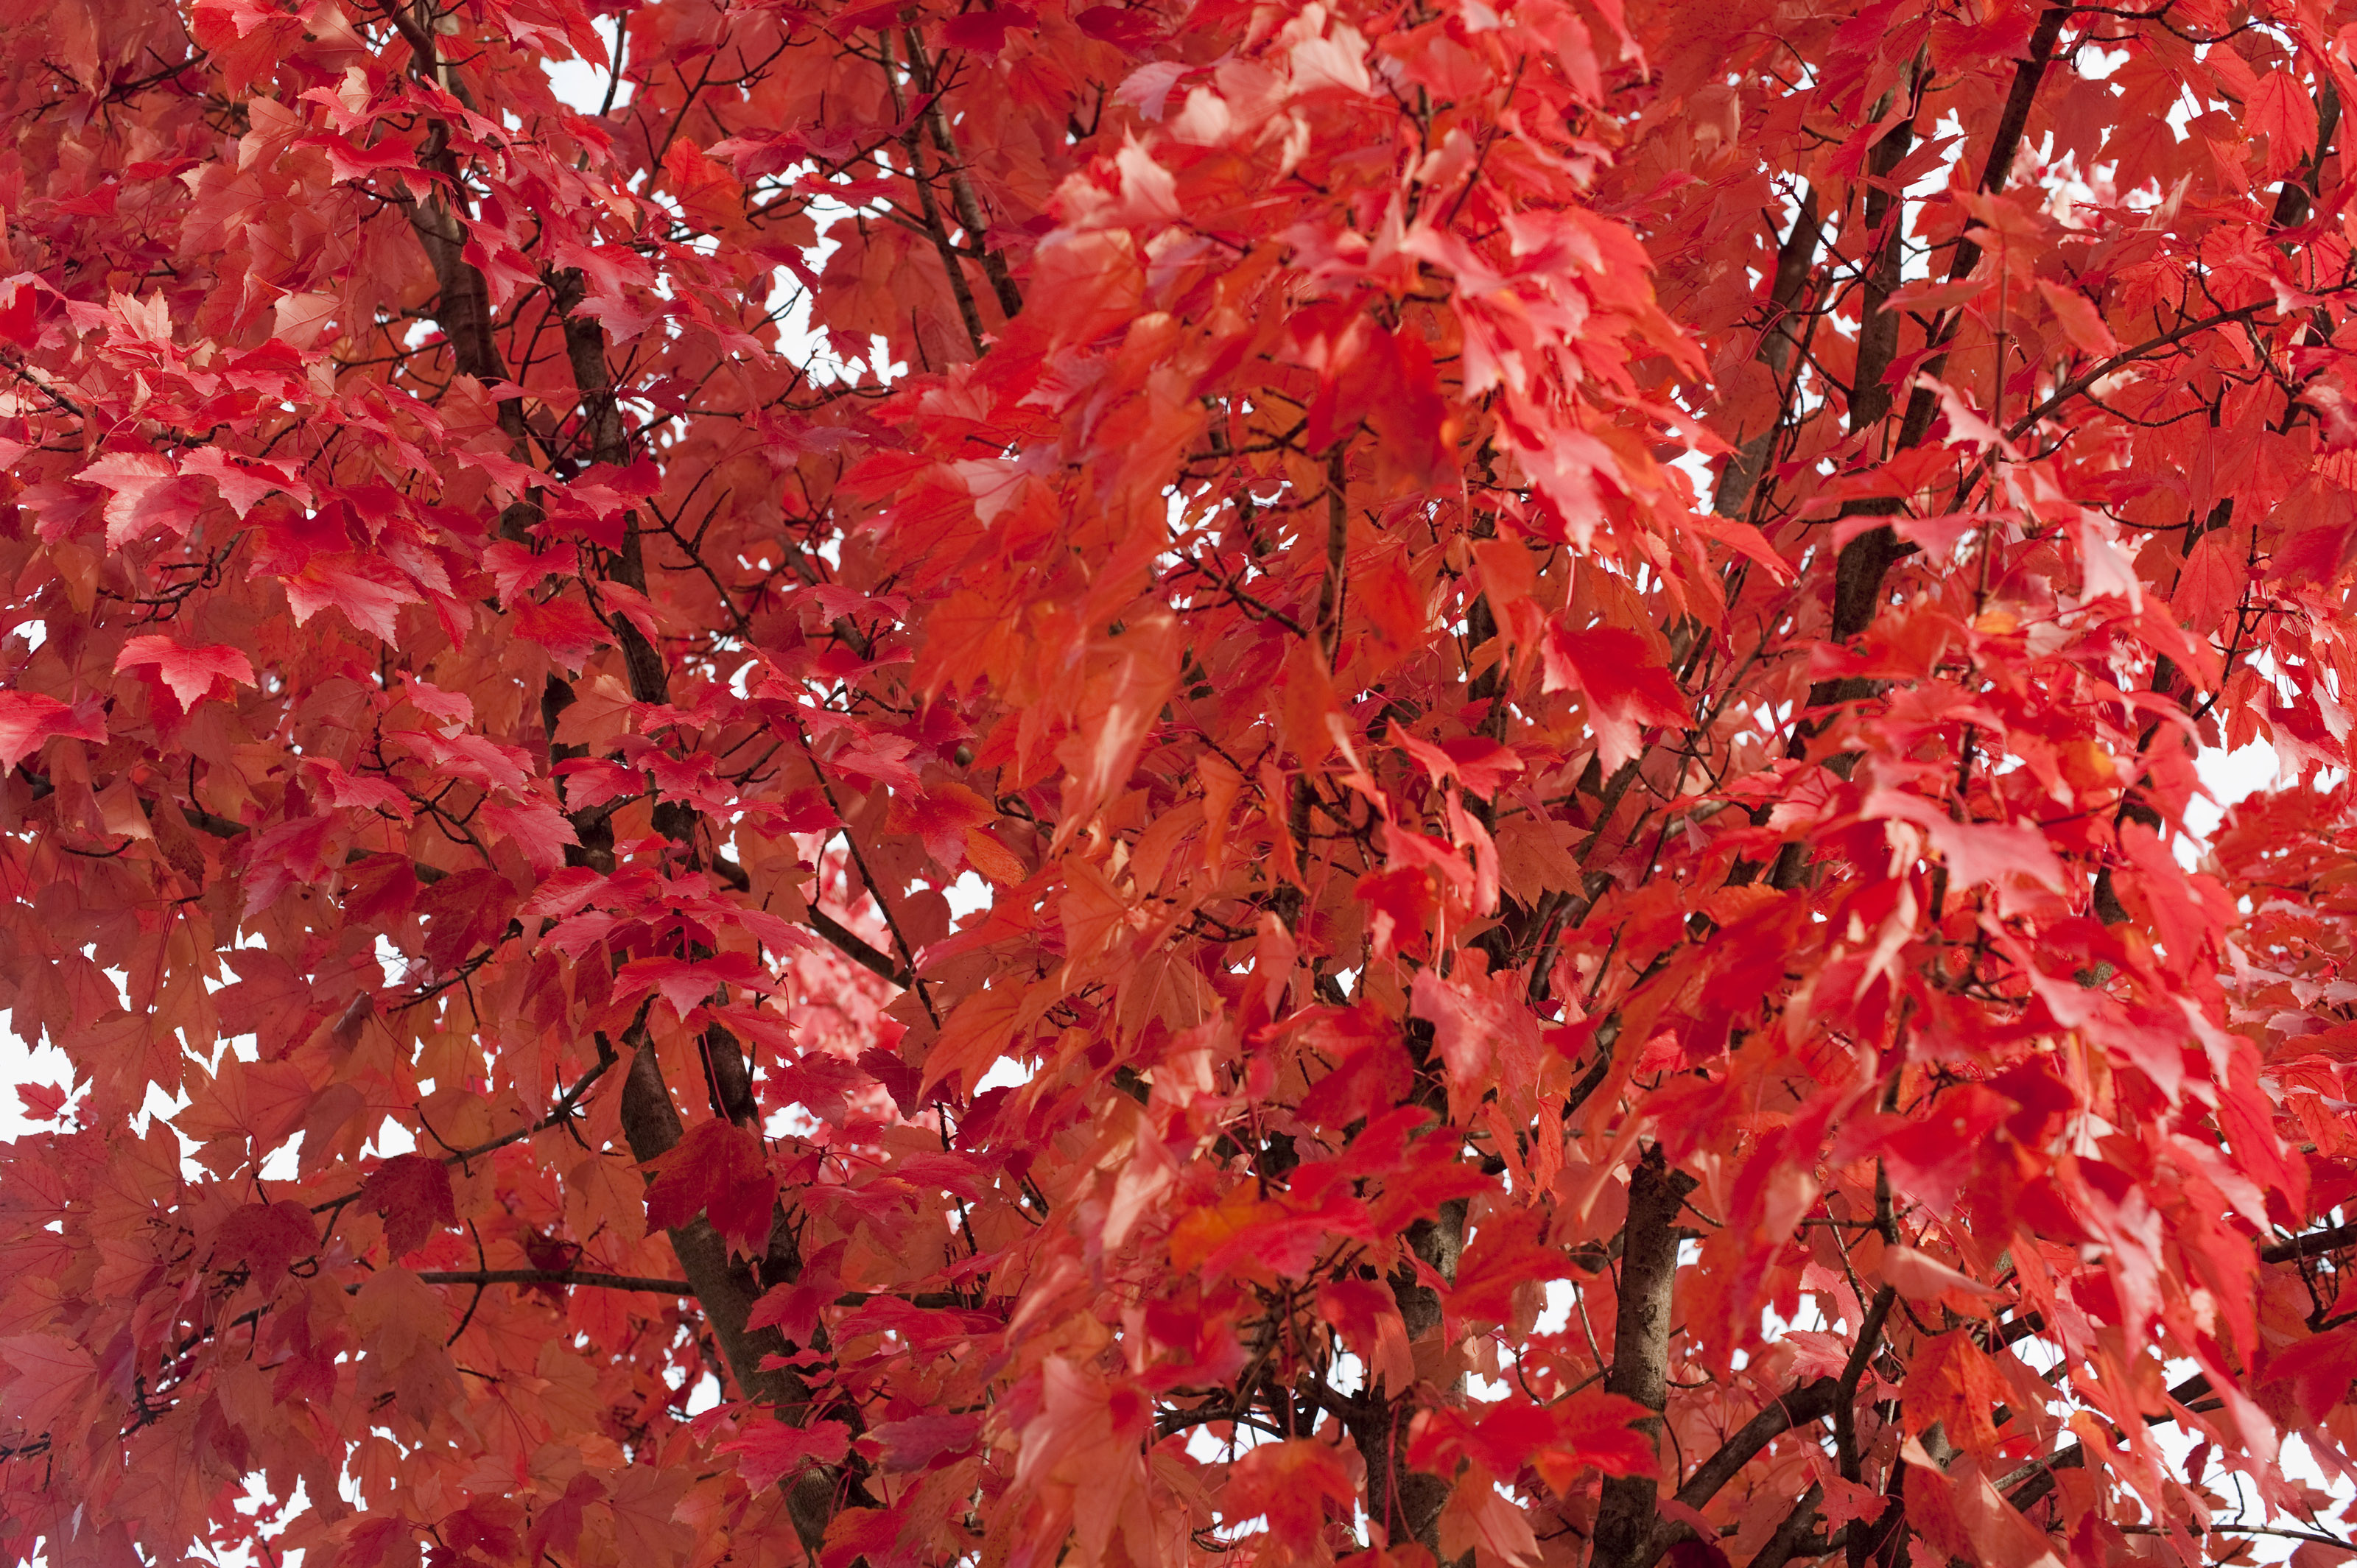 Maple Leaf Wallpaper For Fall Season Free Stock Photo 5172 Red Autumn Leaf Background